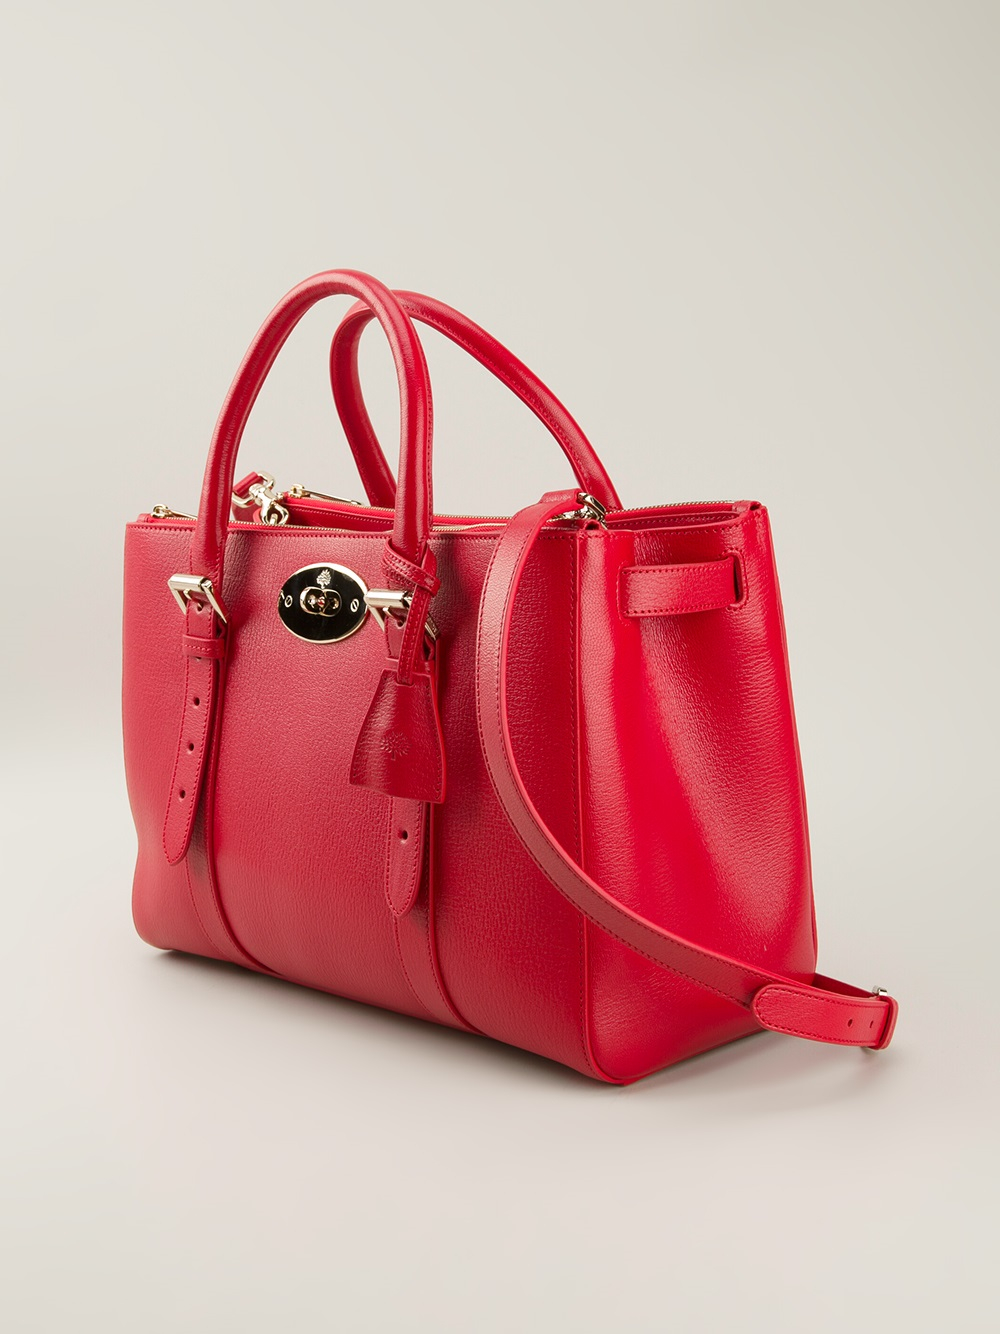 Lyst - Mulberry Bayswater Double Zip Tote in Red b9be0d8611845